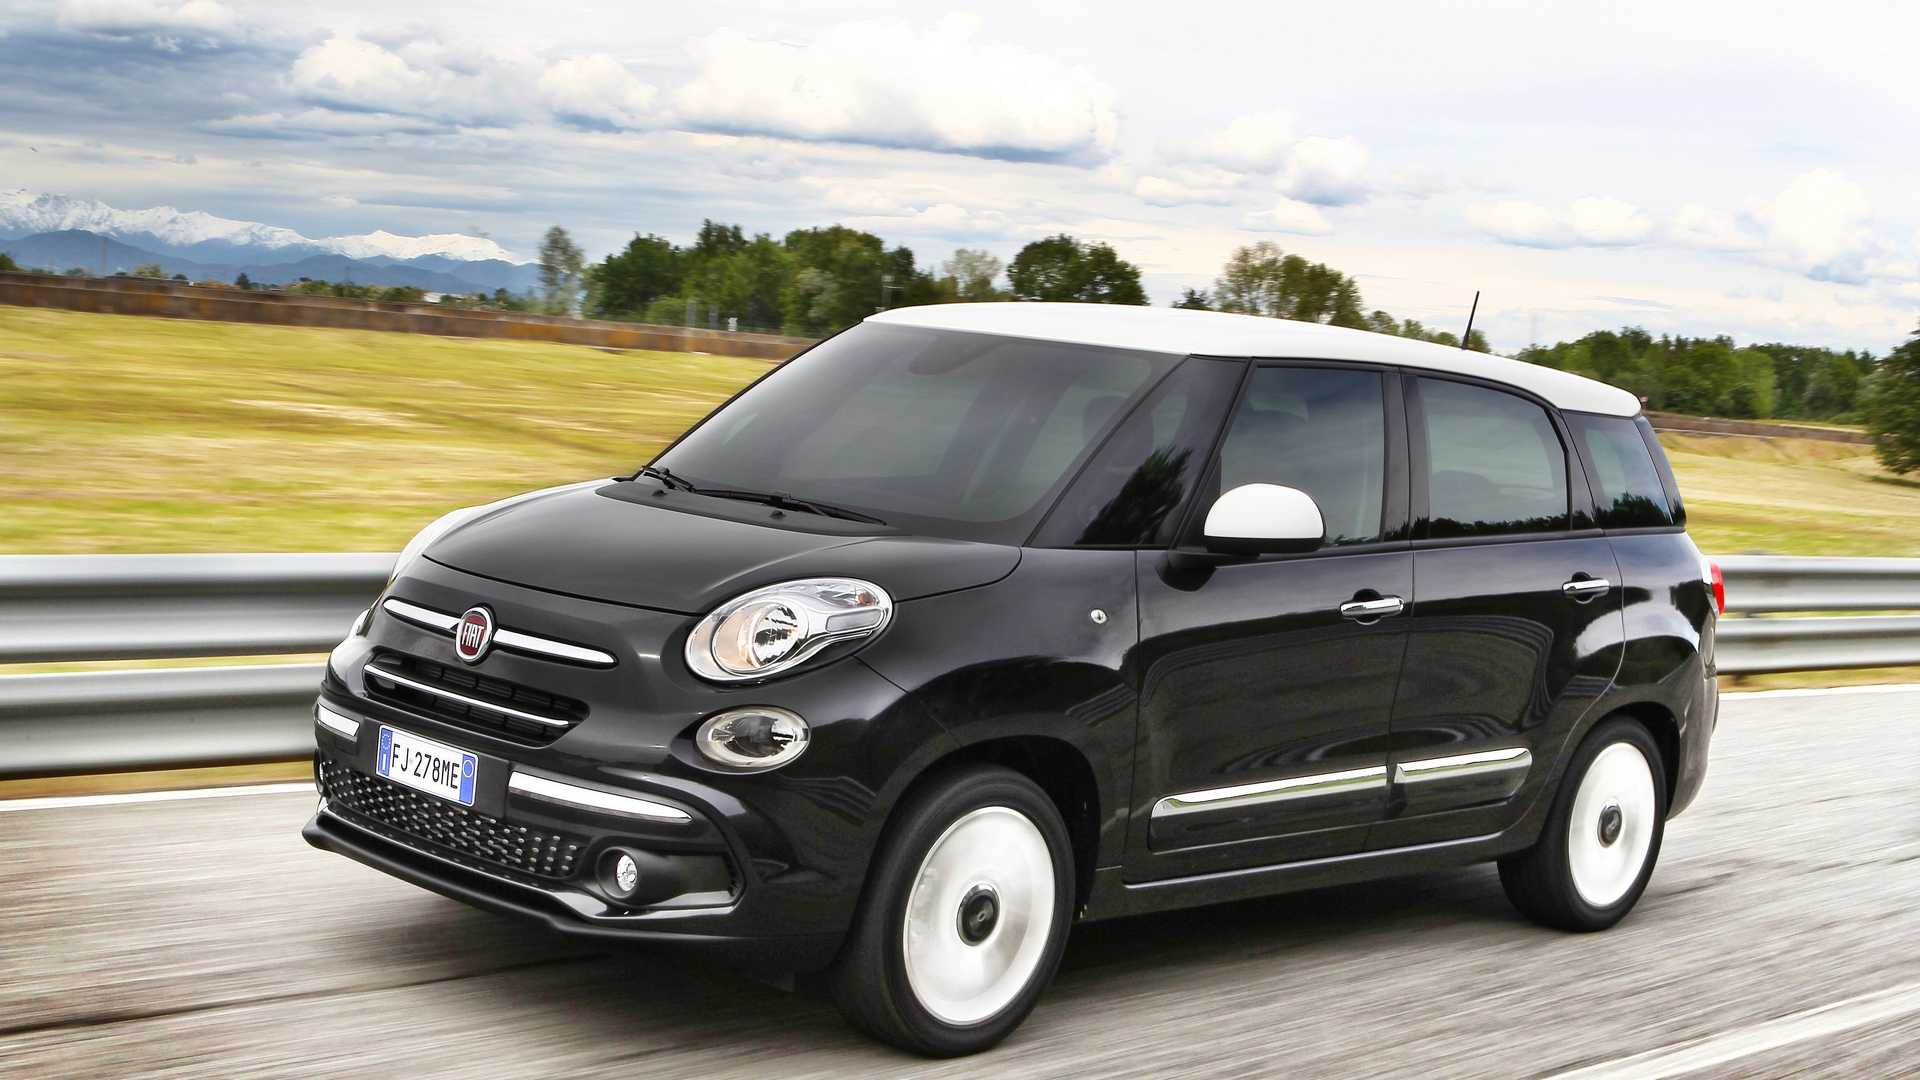 2018_Fiat_500L_wagon_facelift_03